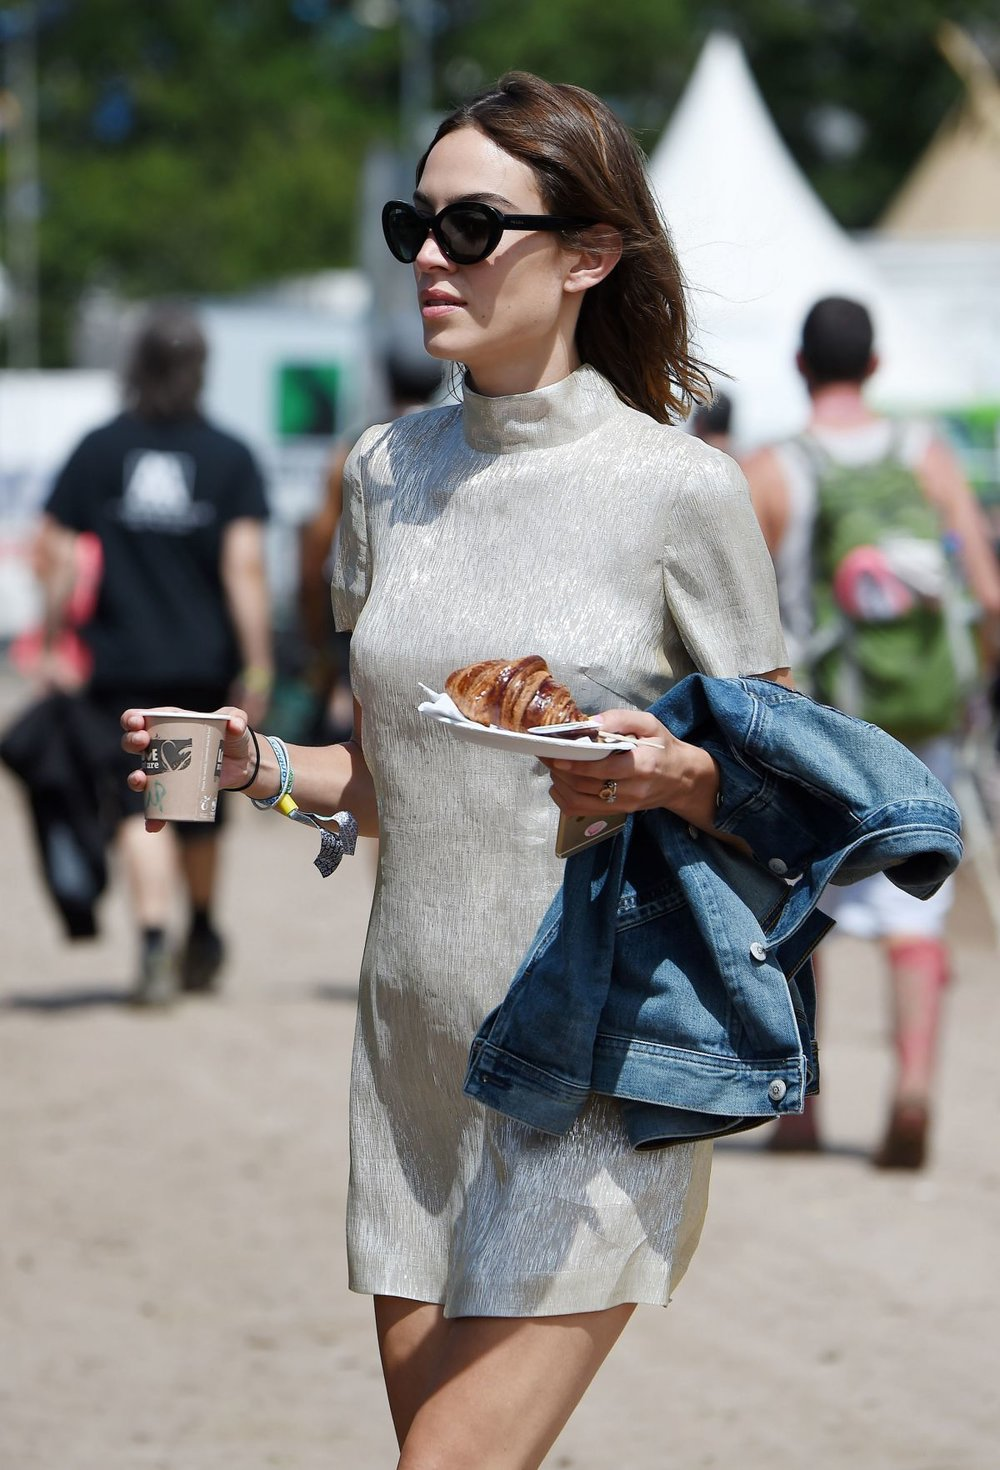 The Festival Field: Alexa Chung - Whether rocking and rolling in the mud or dancing with daisies in the field, festival fashion can be epitomised by Alexa Chung's stylish dress and denim combinations. The British starlet is all of the three Cs while enjoying festivals: cool, chic and comfortable. Pictured at Glastonbury Festival 2015.